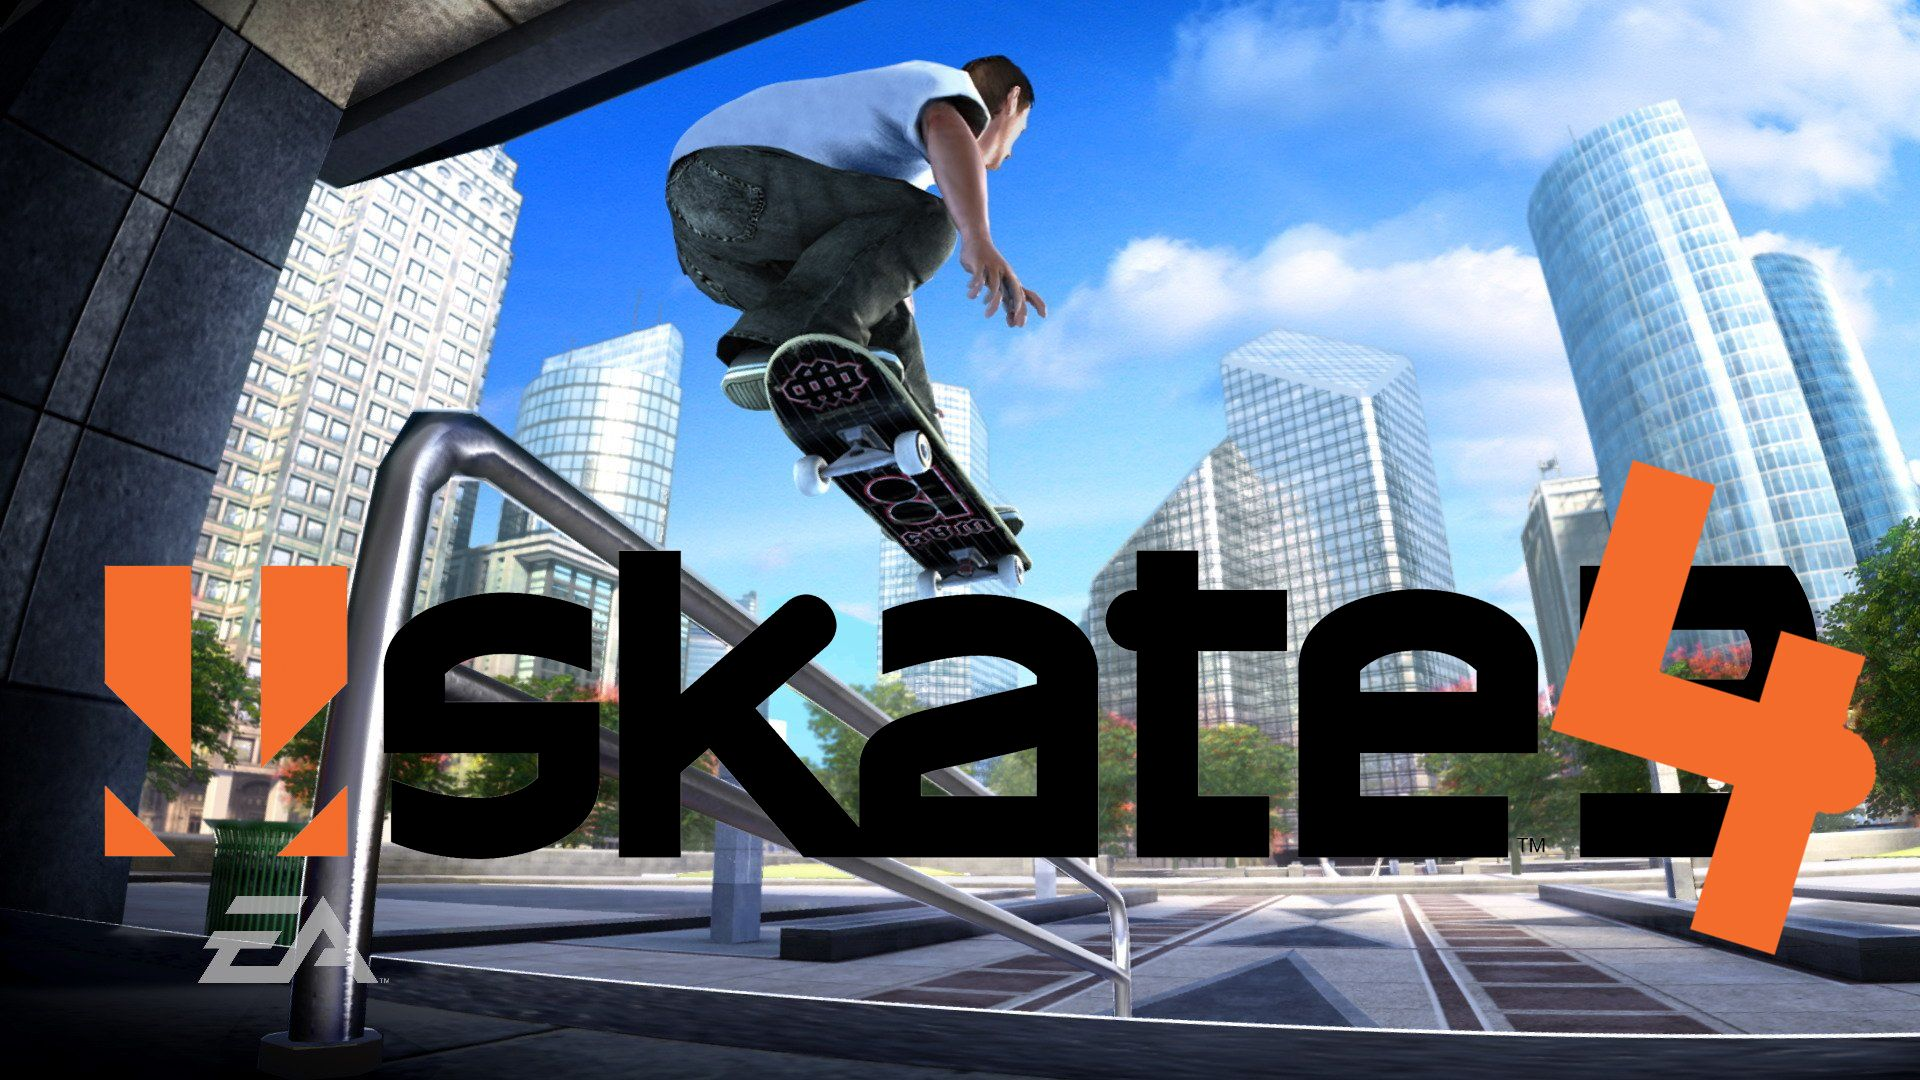 New Skate has been confirmed